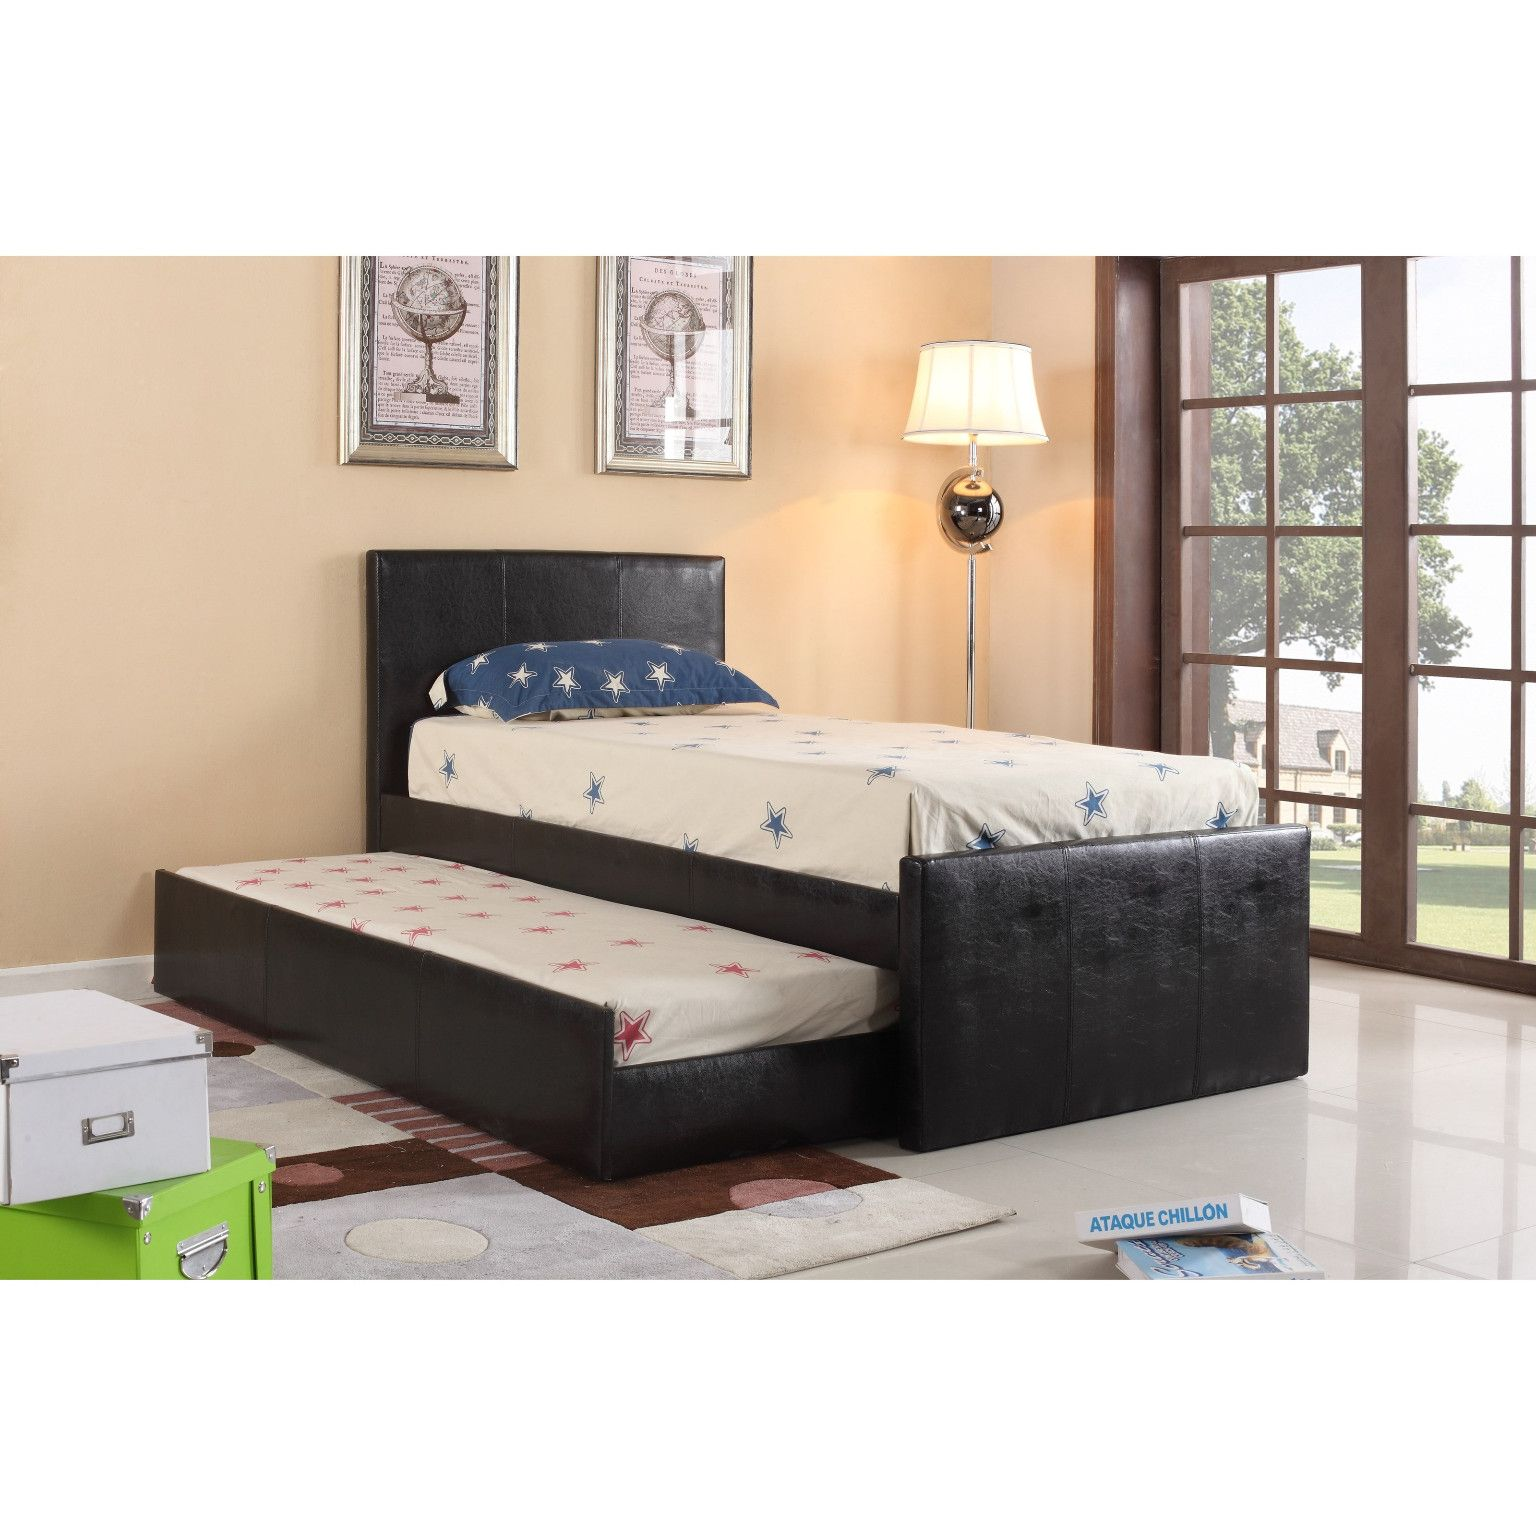 leo padded faux leather twin size trundle bed 249 00 74 l x 42 w x